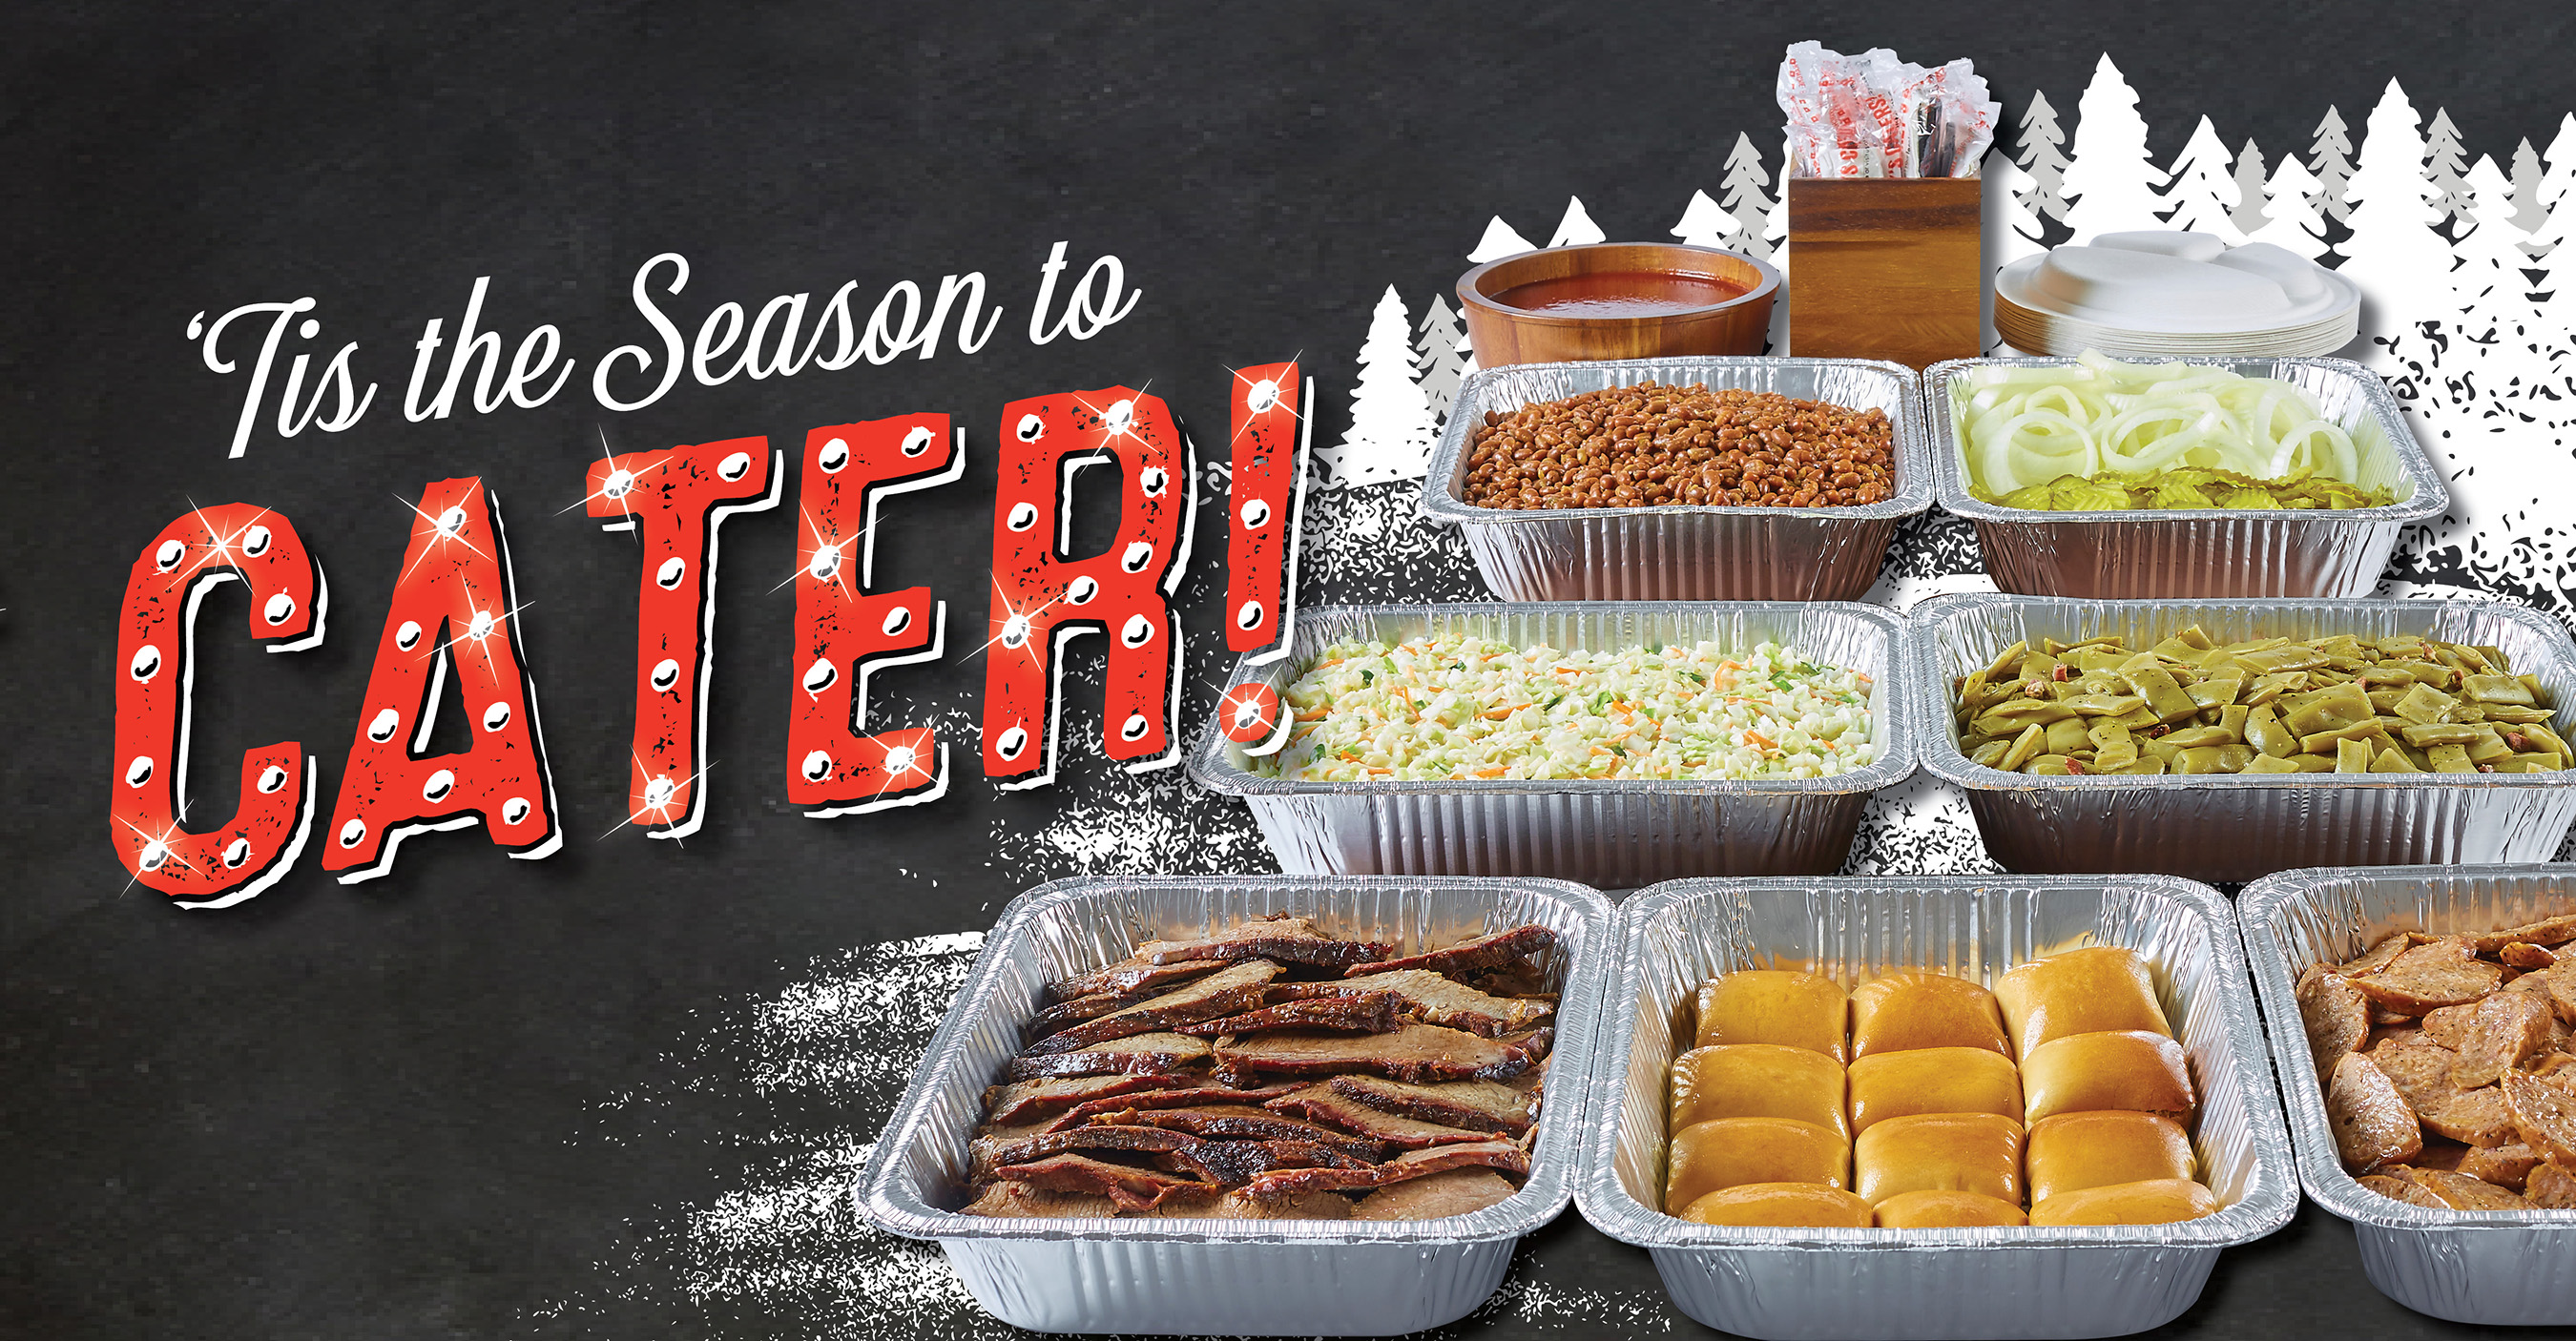 Order Dickey's Holiday Feast at order.dickeys.com